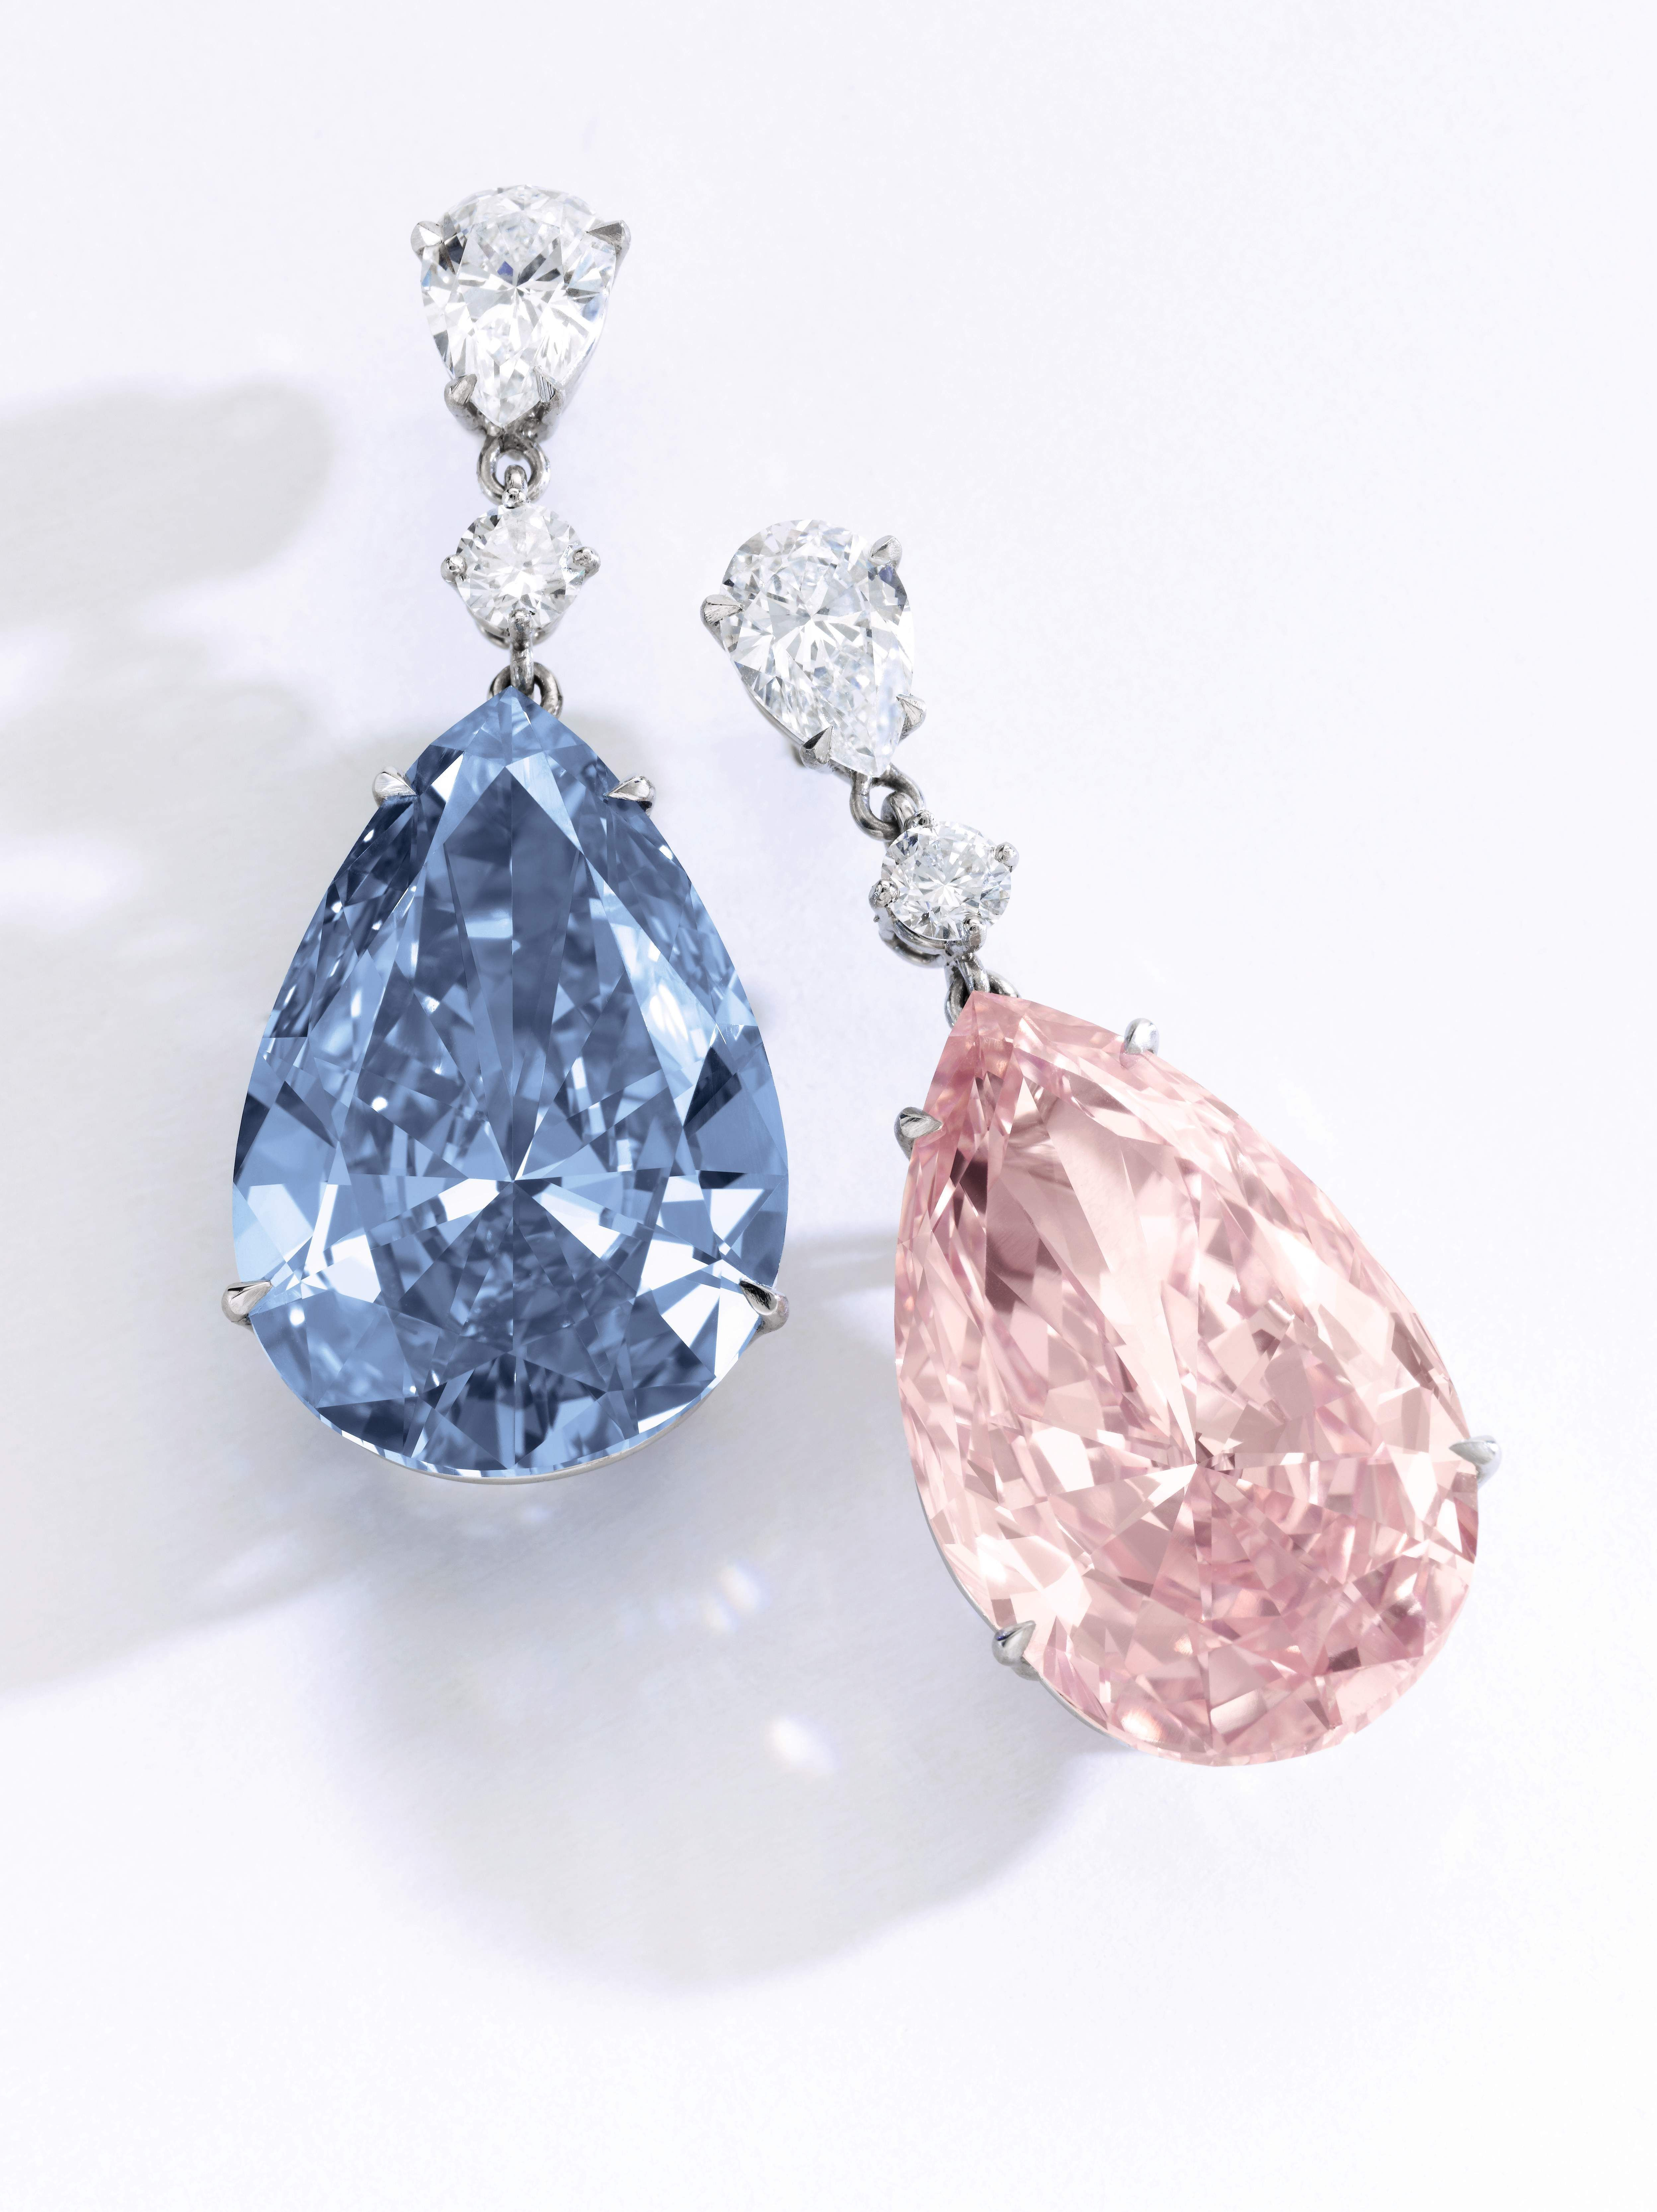 7afbaa34b8f0 The auction house is billing the sale as the most valuable diamond ...